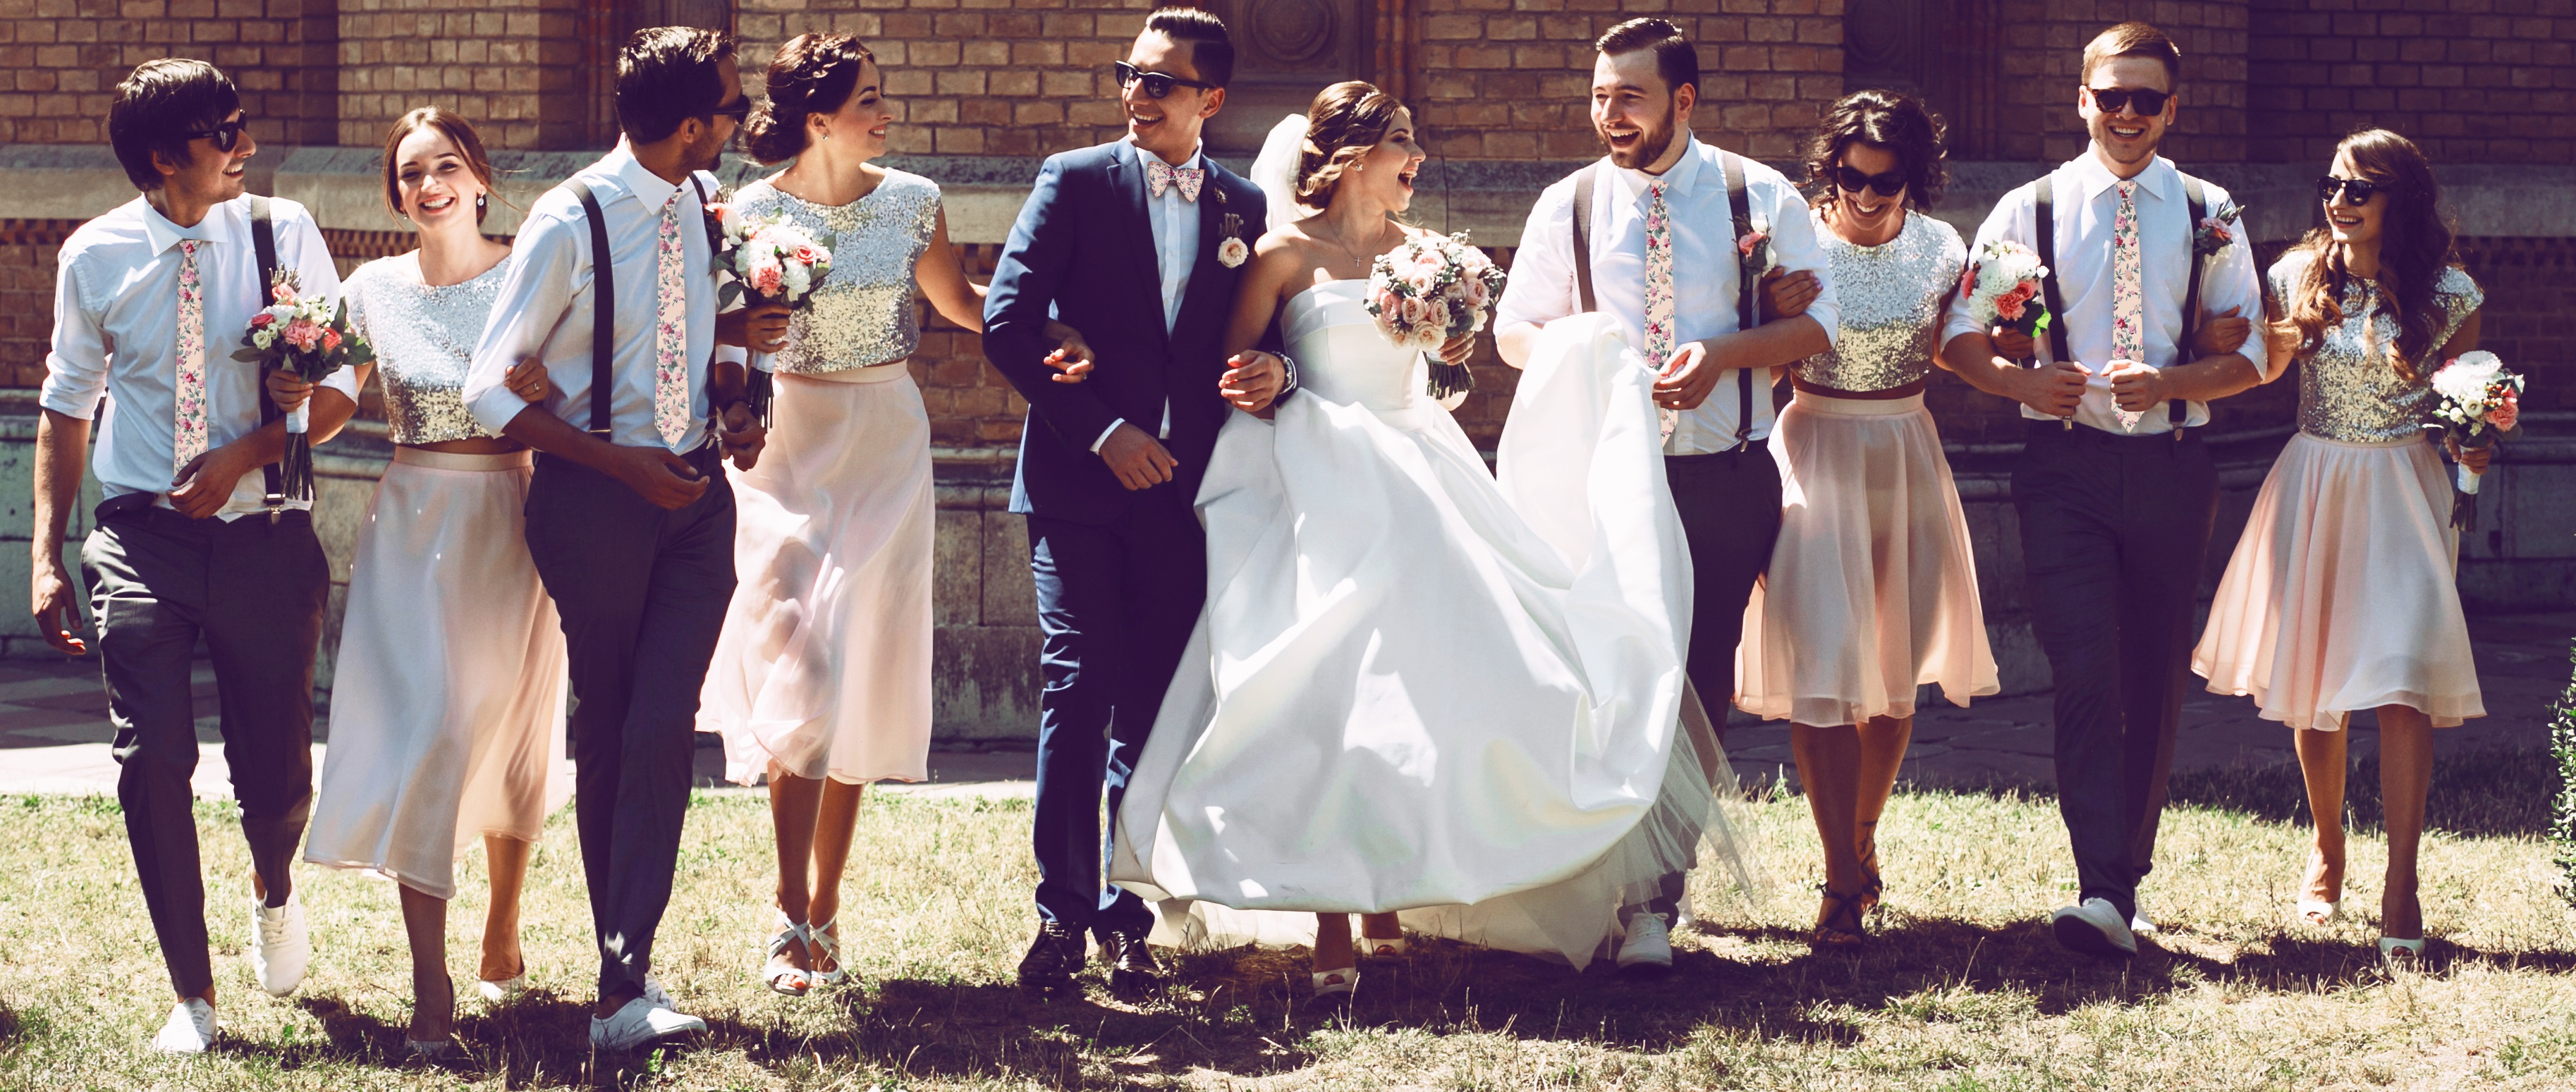 Beautiful Bride Groom & Groomsmen